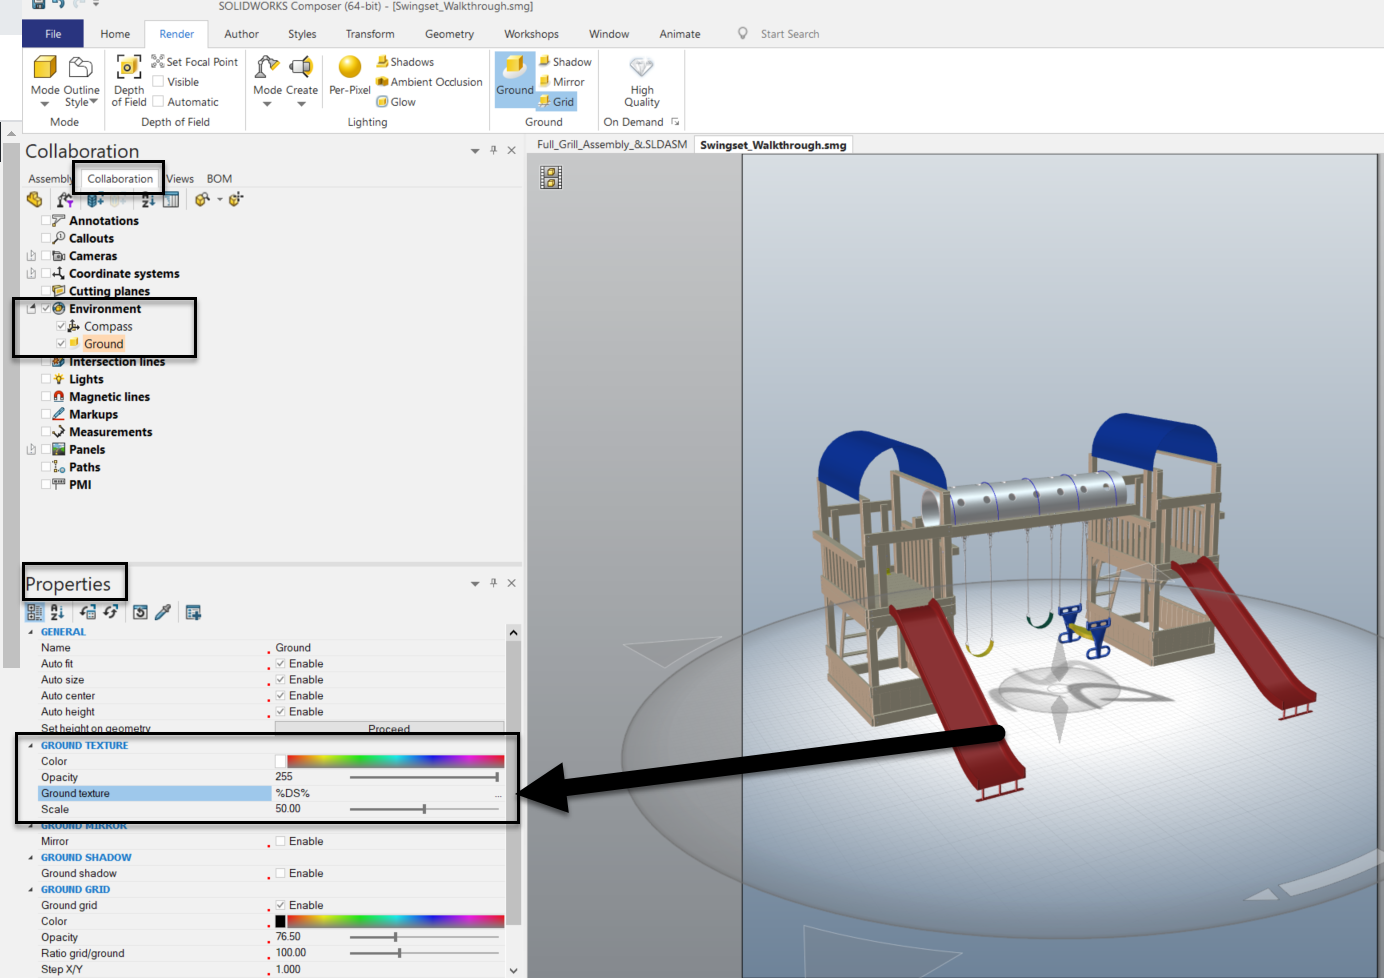 SOLIDWORKS Composer Ground properties - Collaboration Tab